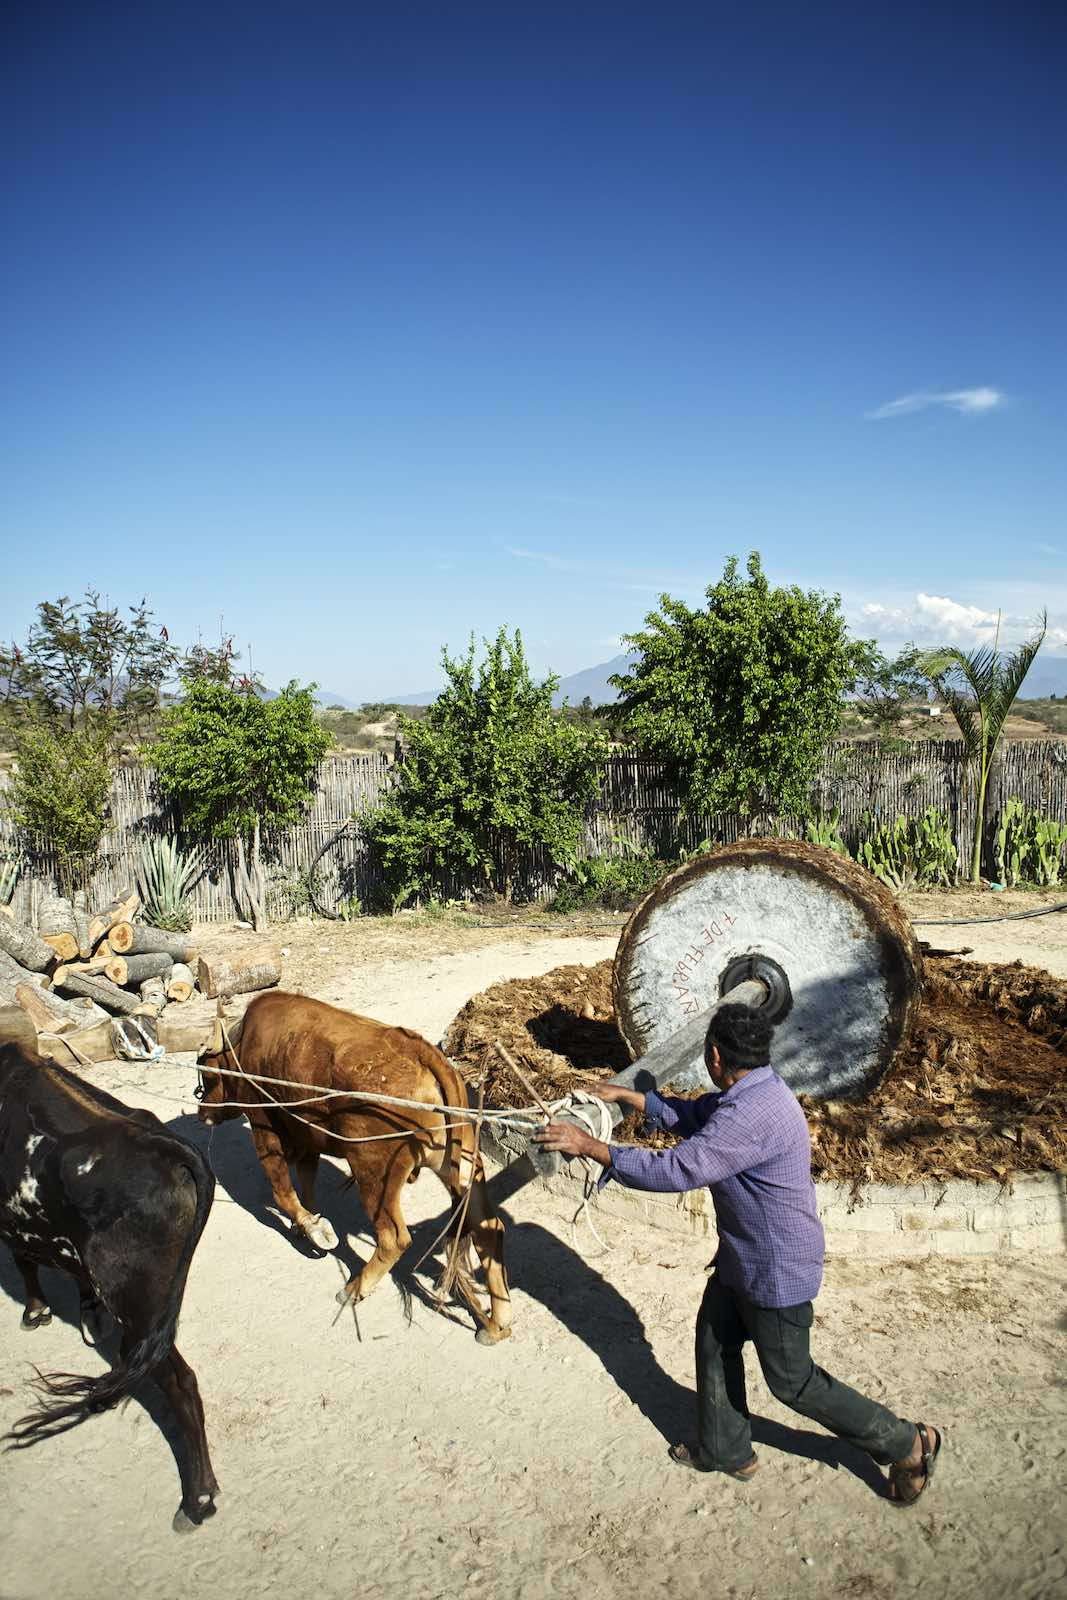 Piñas are crushed using a stone wheel pulled by cows.